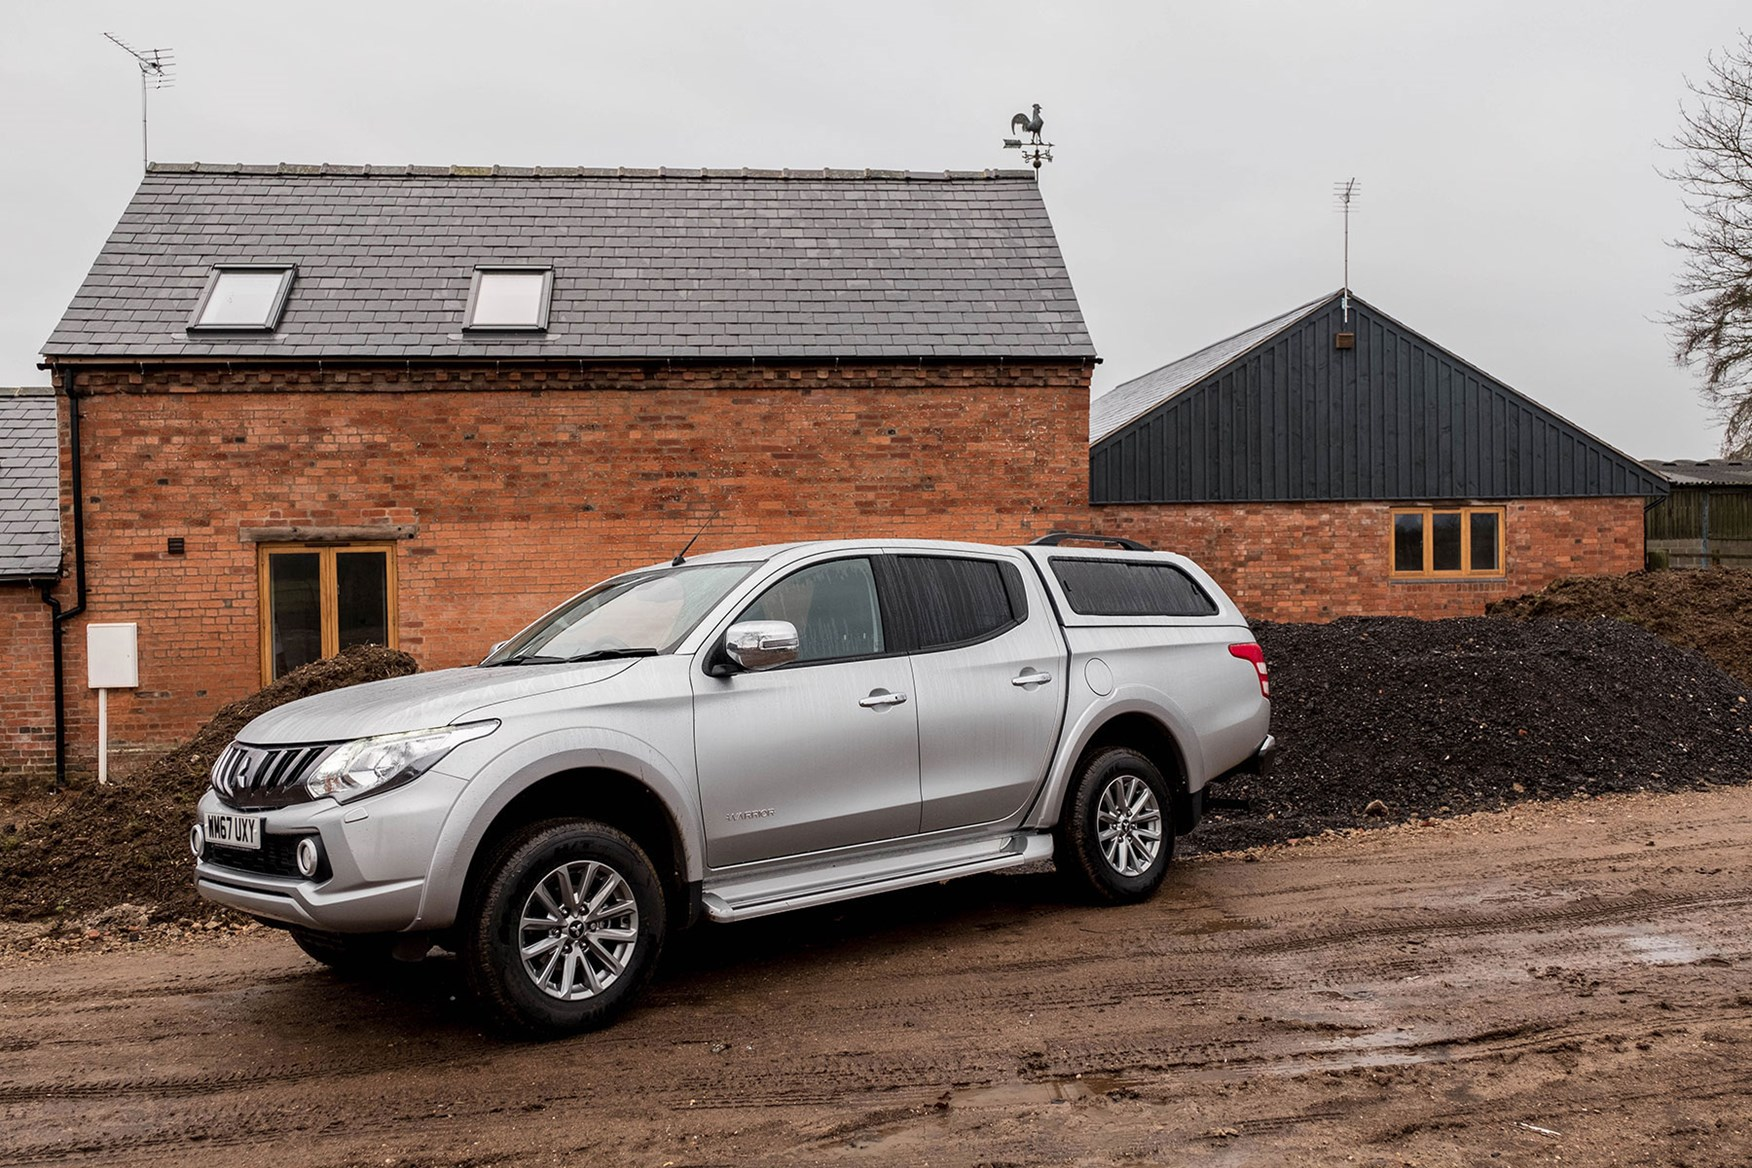 Mistubishi L200 Warrior 2018 review - side view, silver, rain, parked in front of farm building